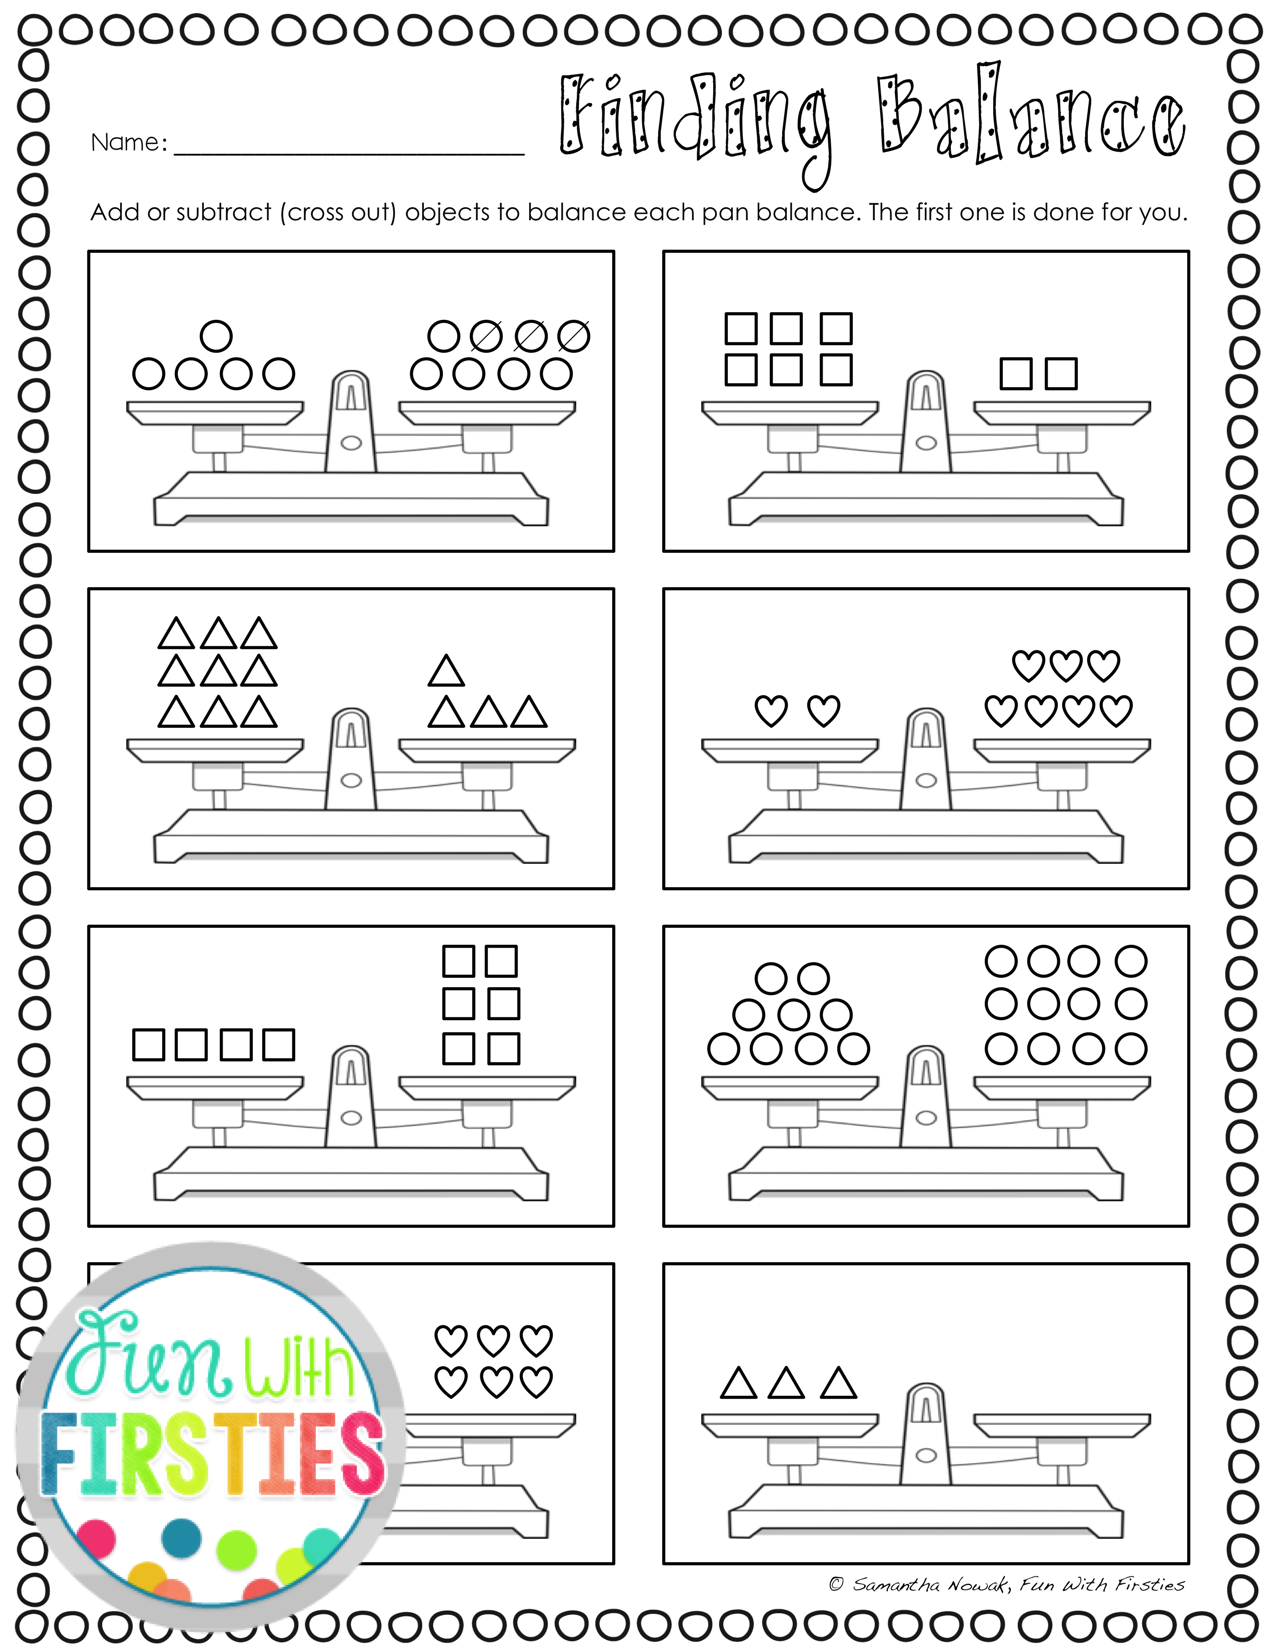 Balancing Equations: Print \u0026 Go! worksheets for extra practice and/or  assessment   First grade math worksheets [ 1652 x 1277 Pixel ]